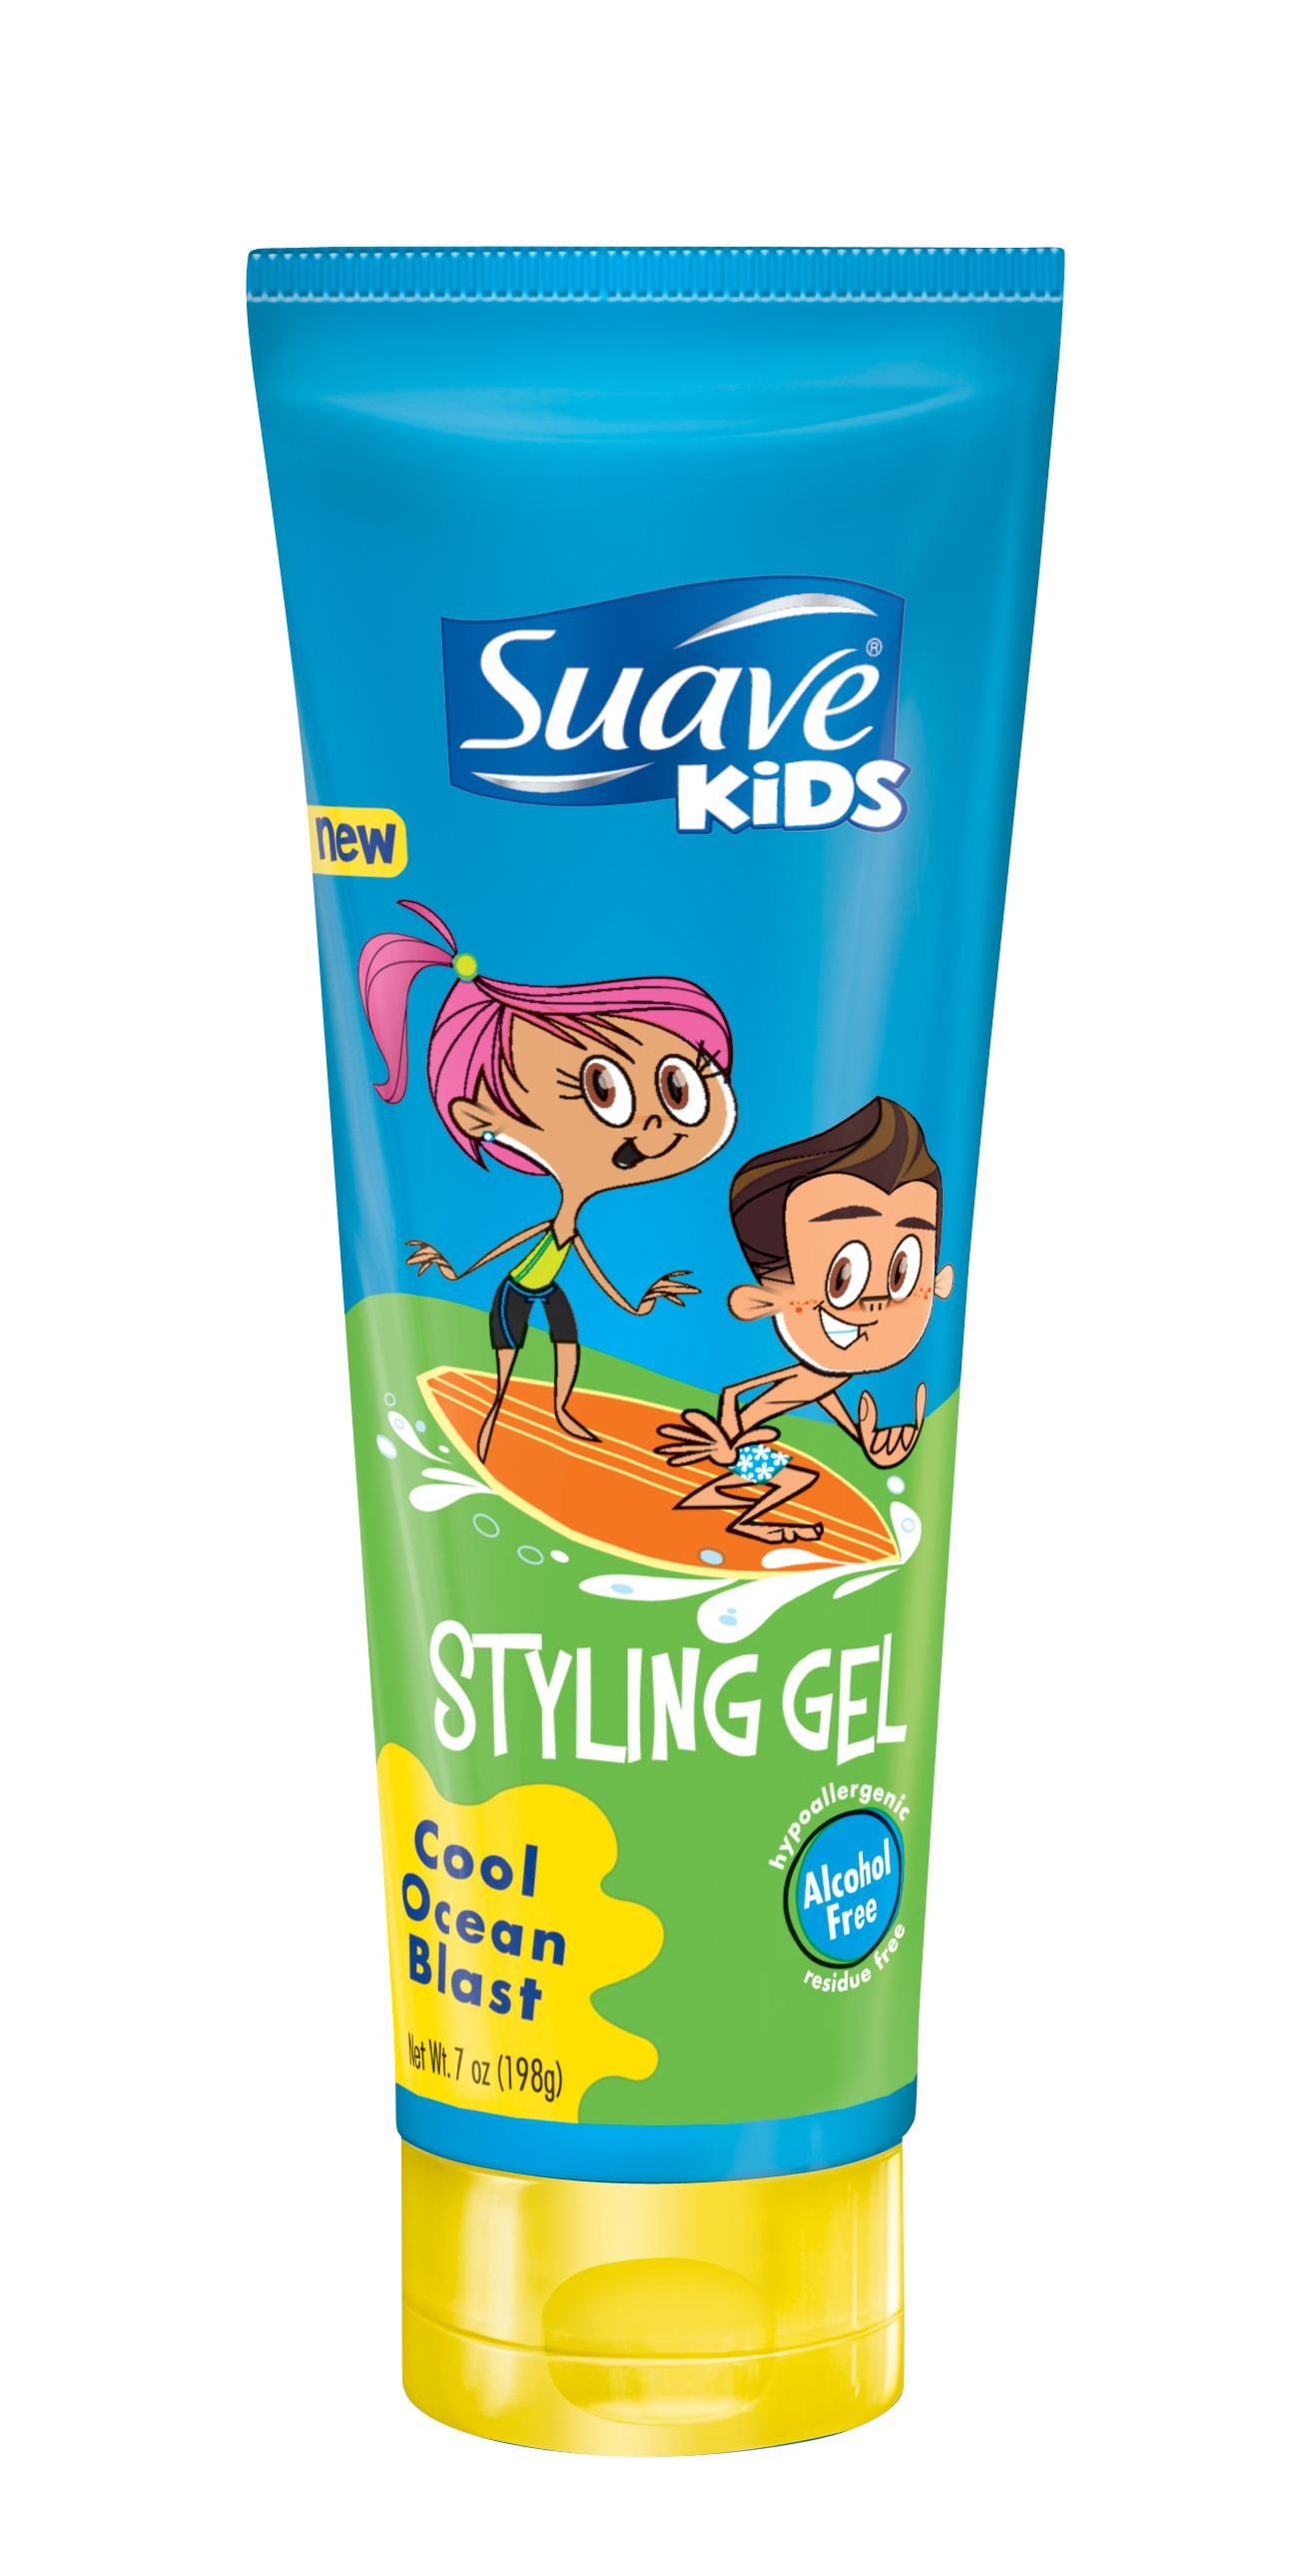 Unlock Your Kid S Rock N Roll Side Suave Kids Gel Styling Hair Haircare Hairstyle Styling Beau Suave Styling Gel Science Experiments Kids Preschool